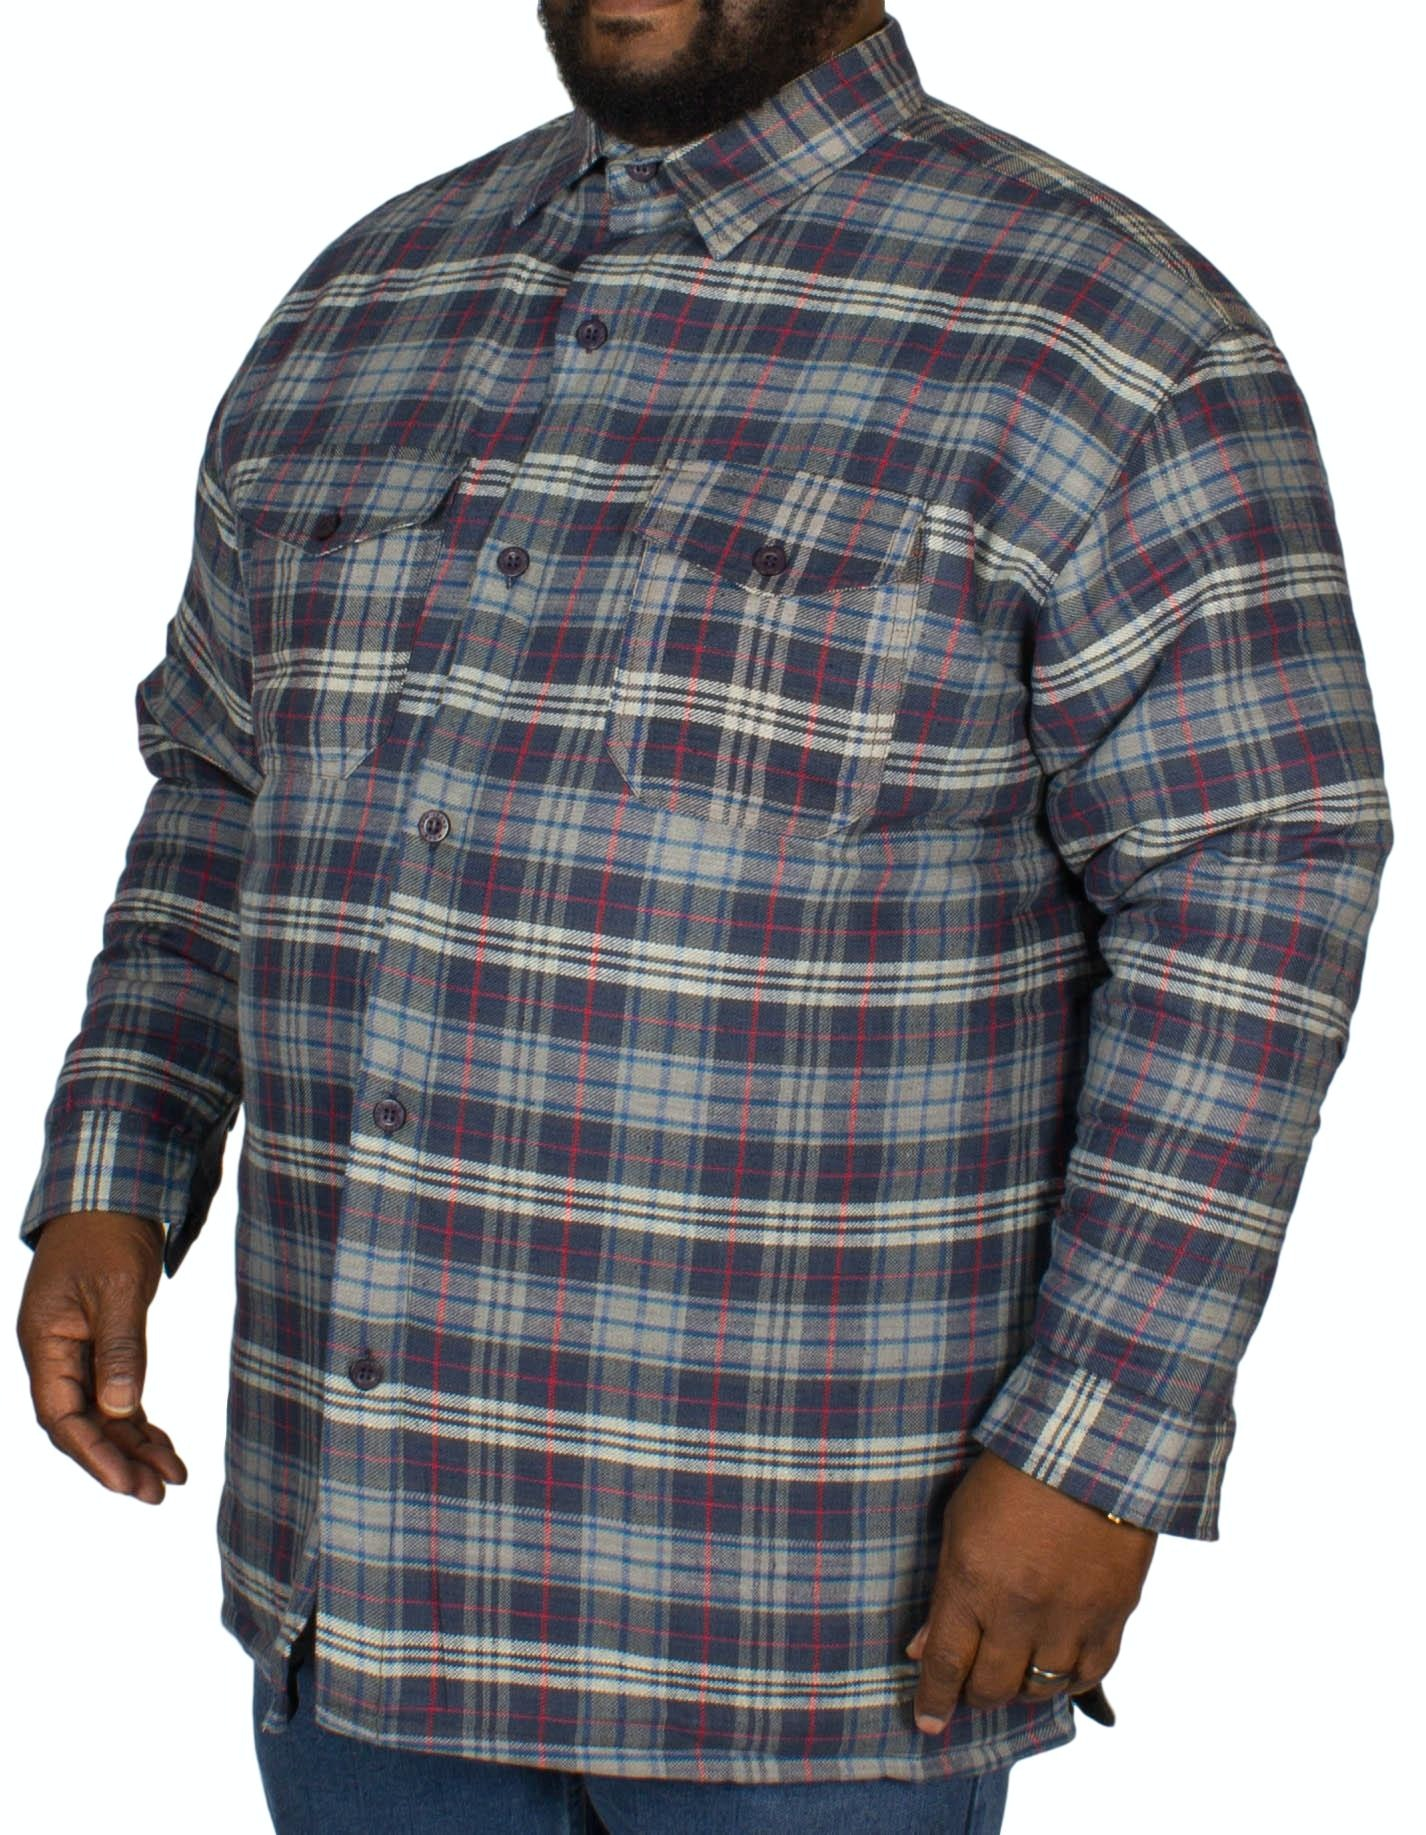 KAM Padded Shirt Navy